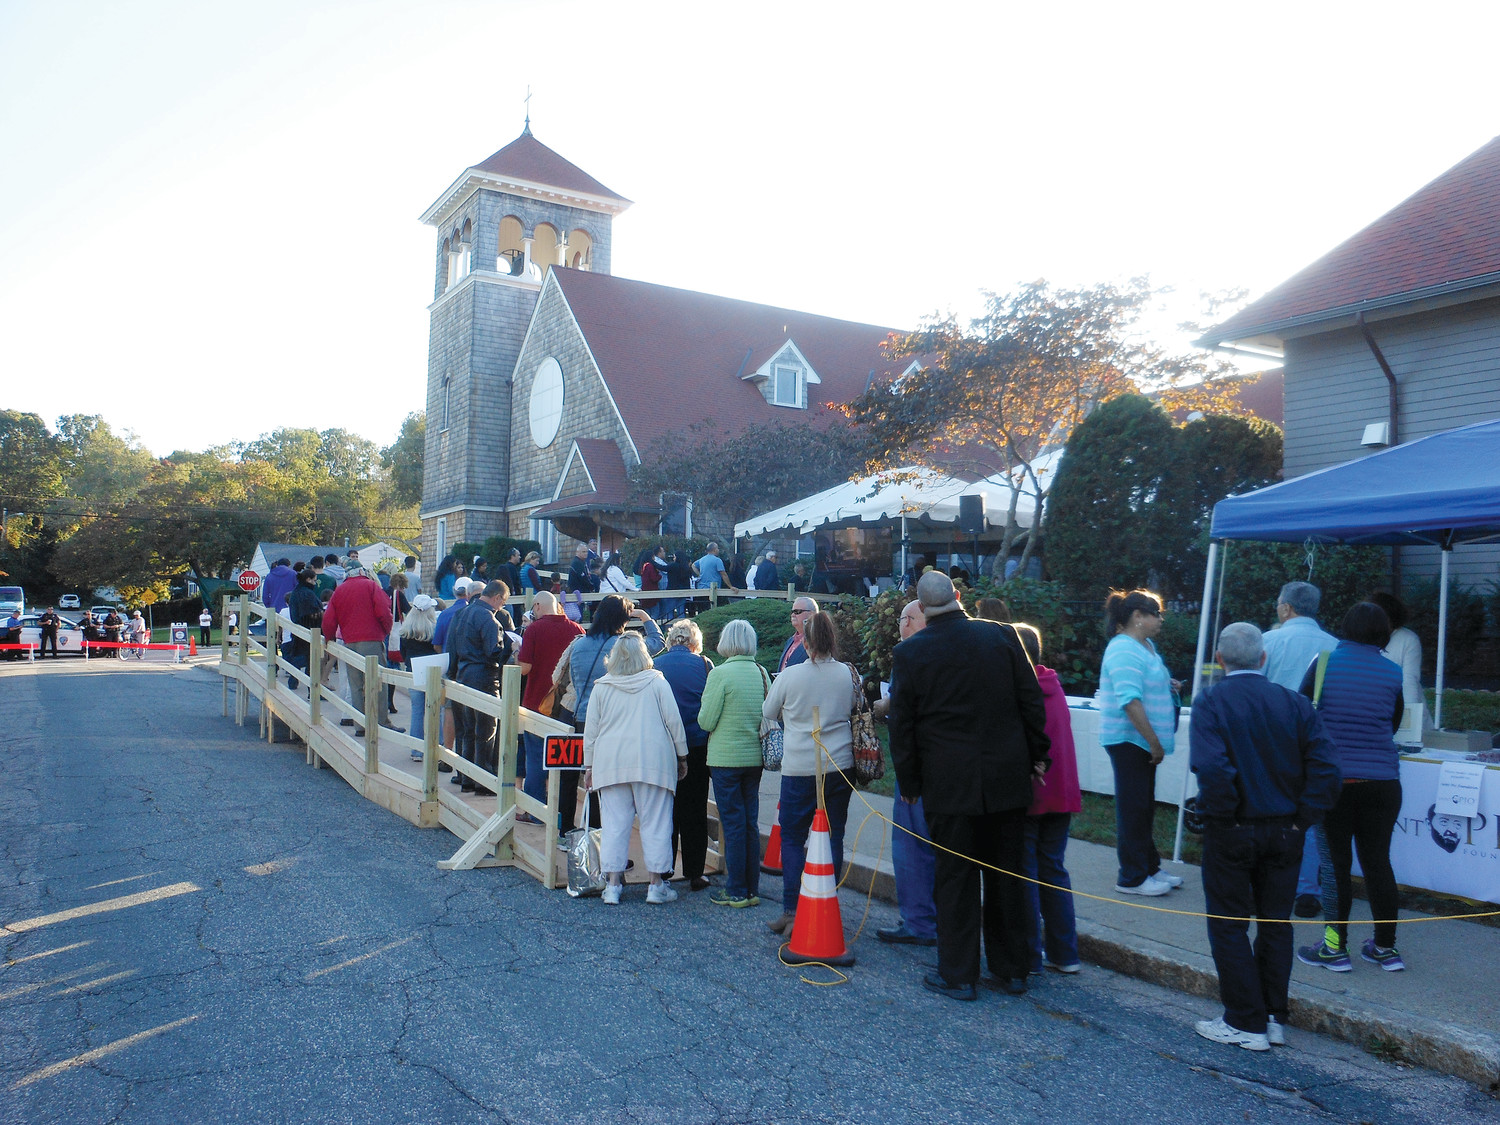 Crowds gather outside of St. Thomas More Church in Narragansett to venerate the relics of St. Padre Pio.